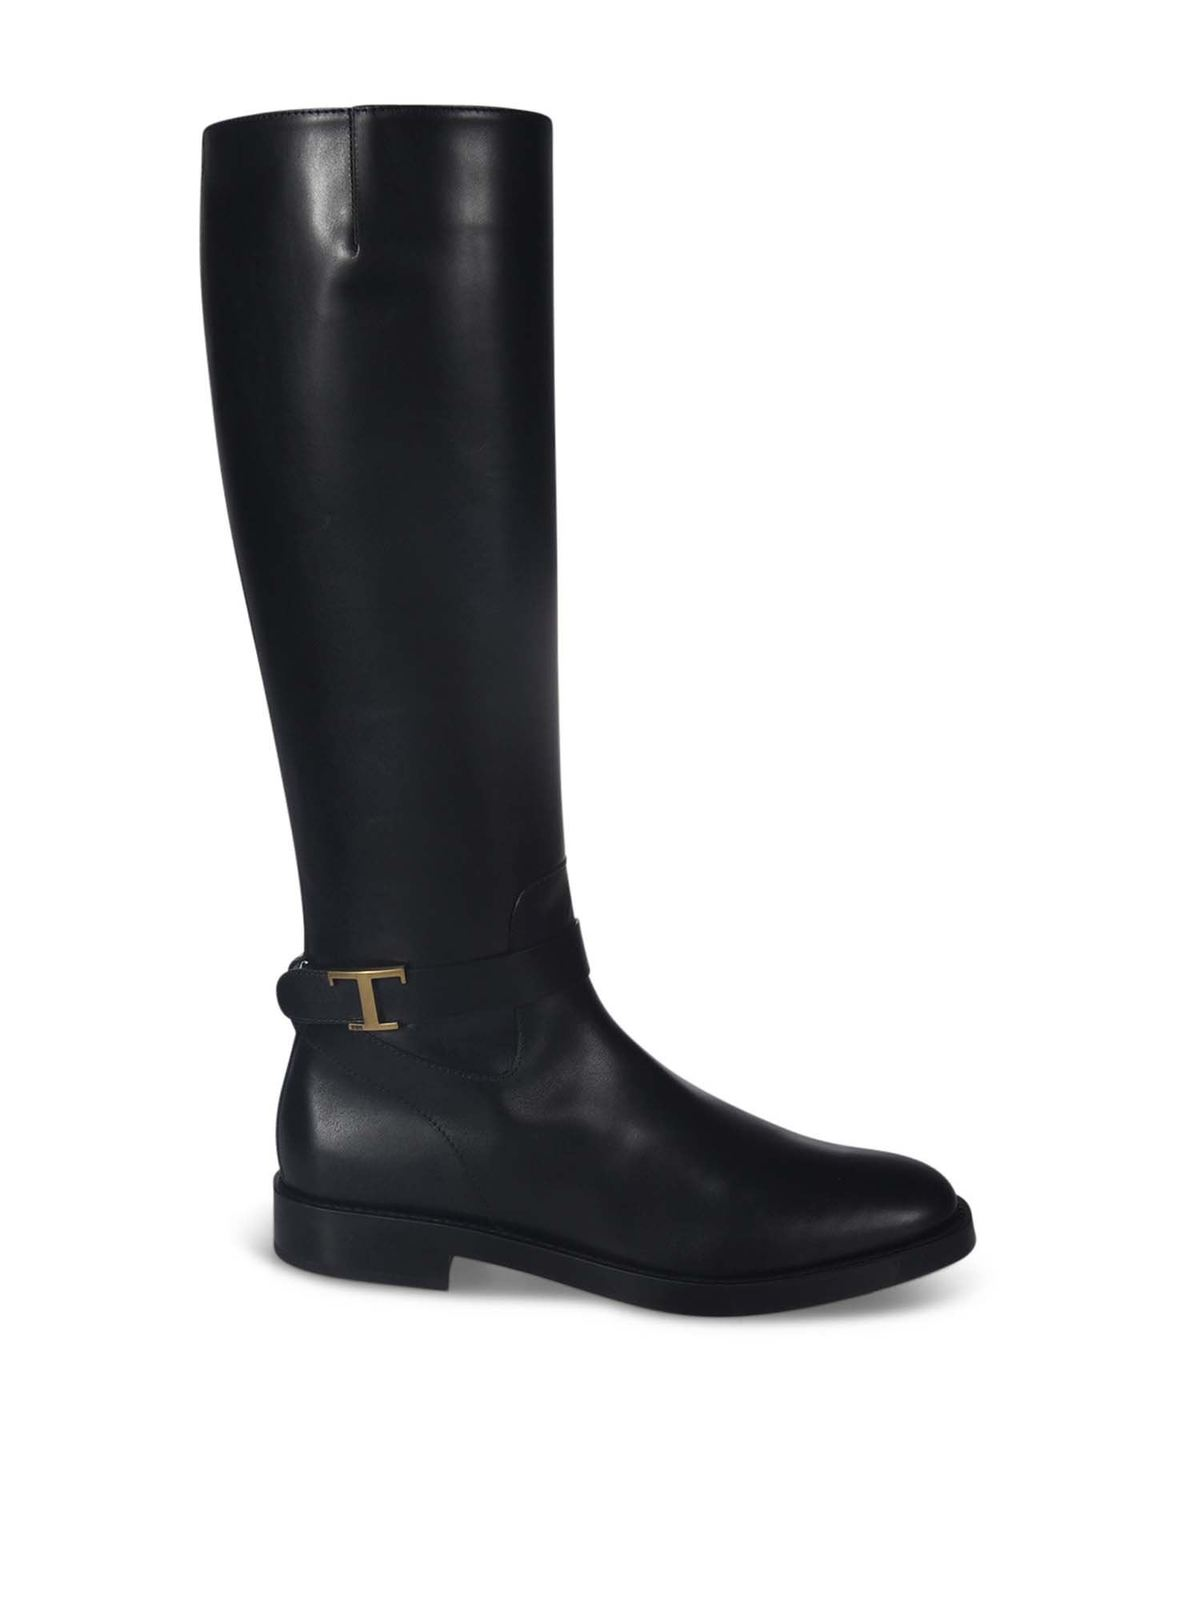 Tod's Shoes T LOGO BOOTS IN BLACK